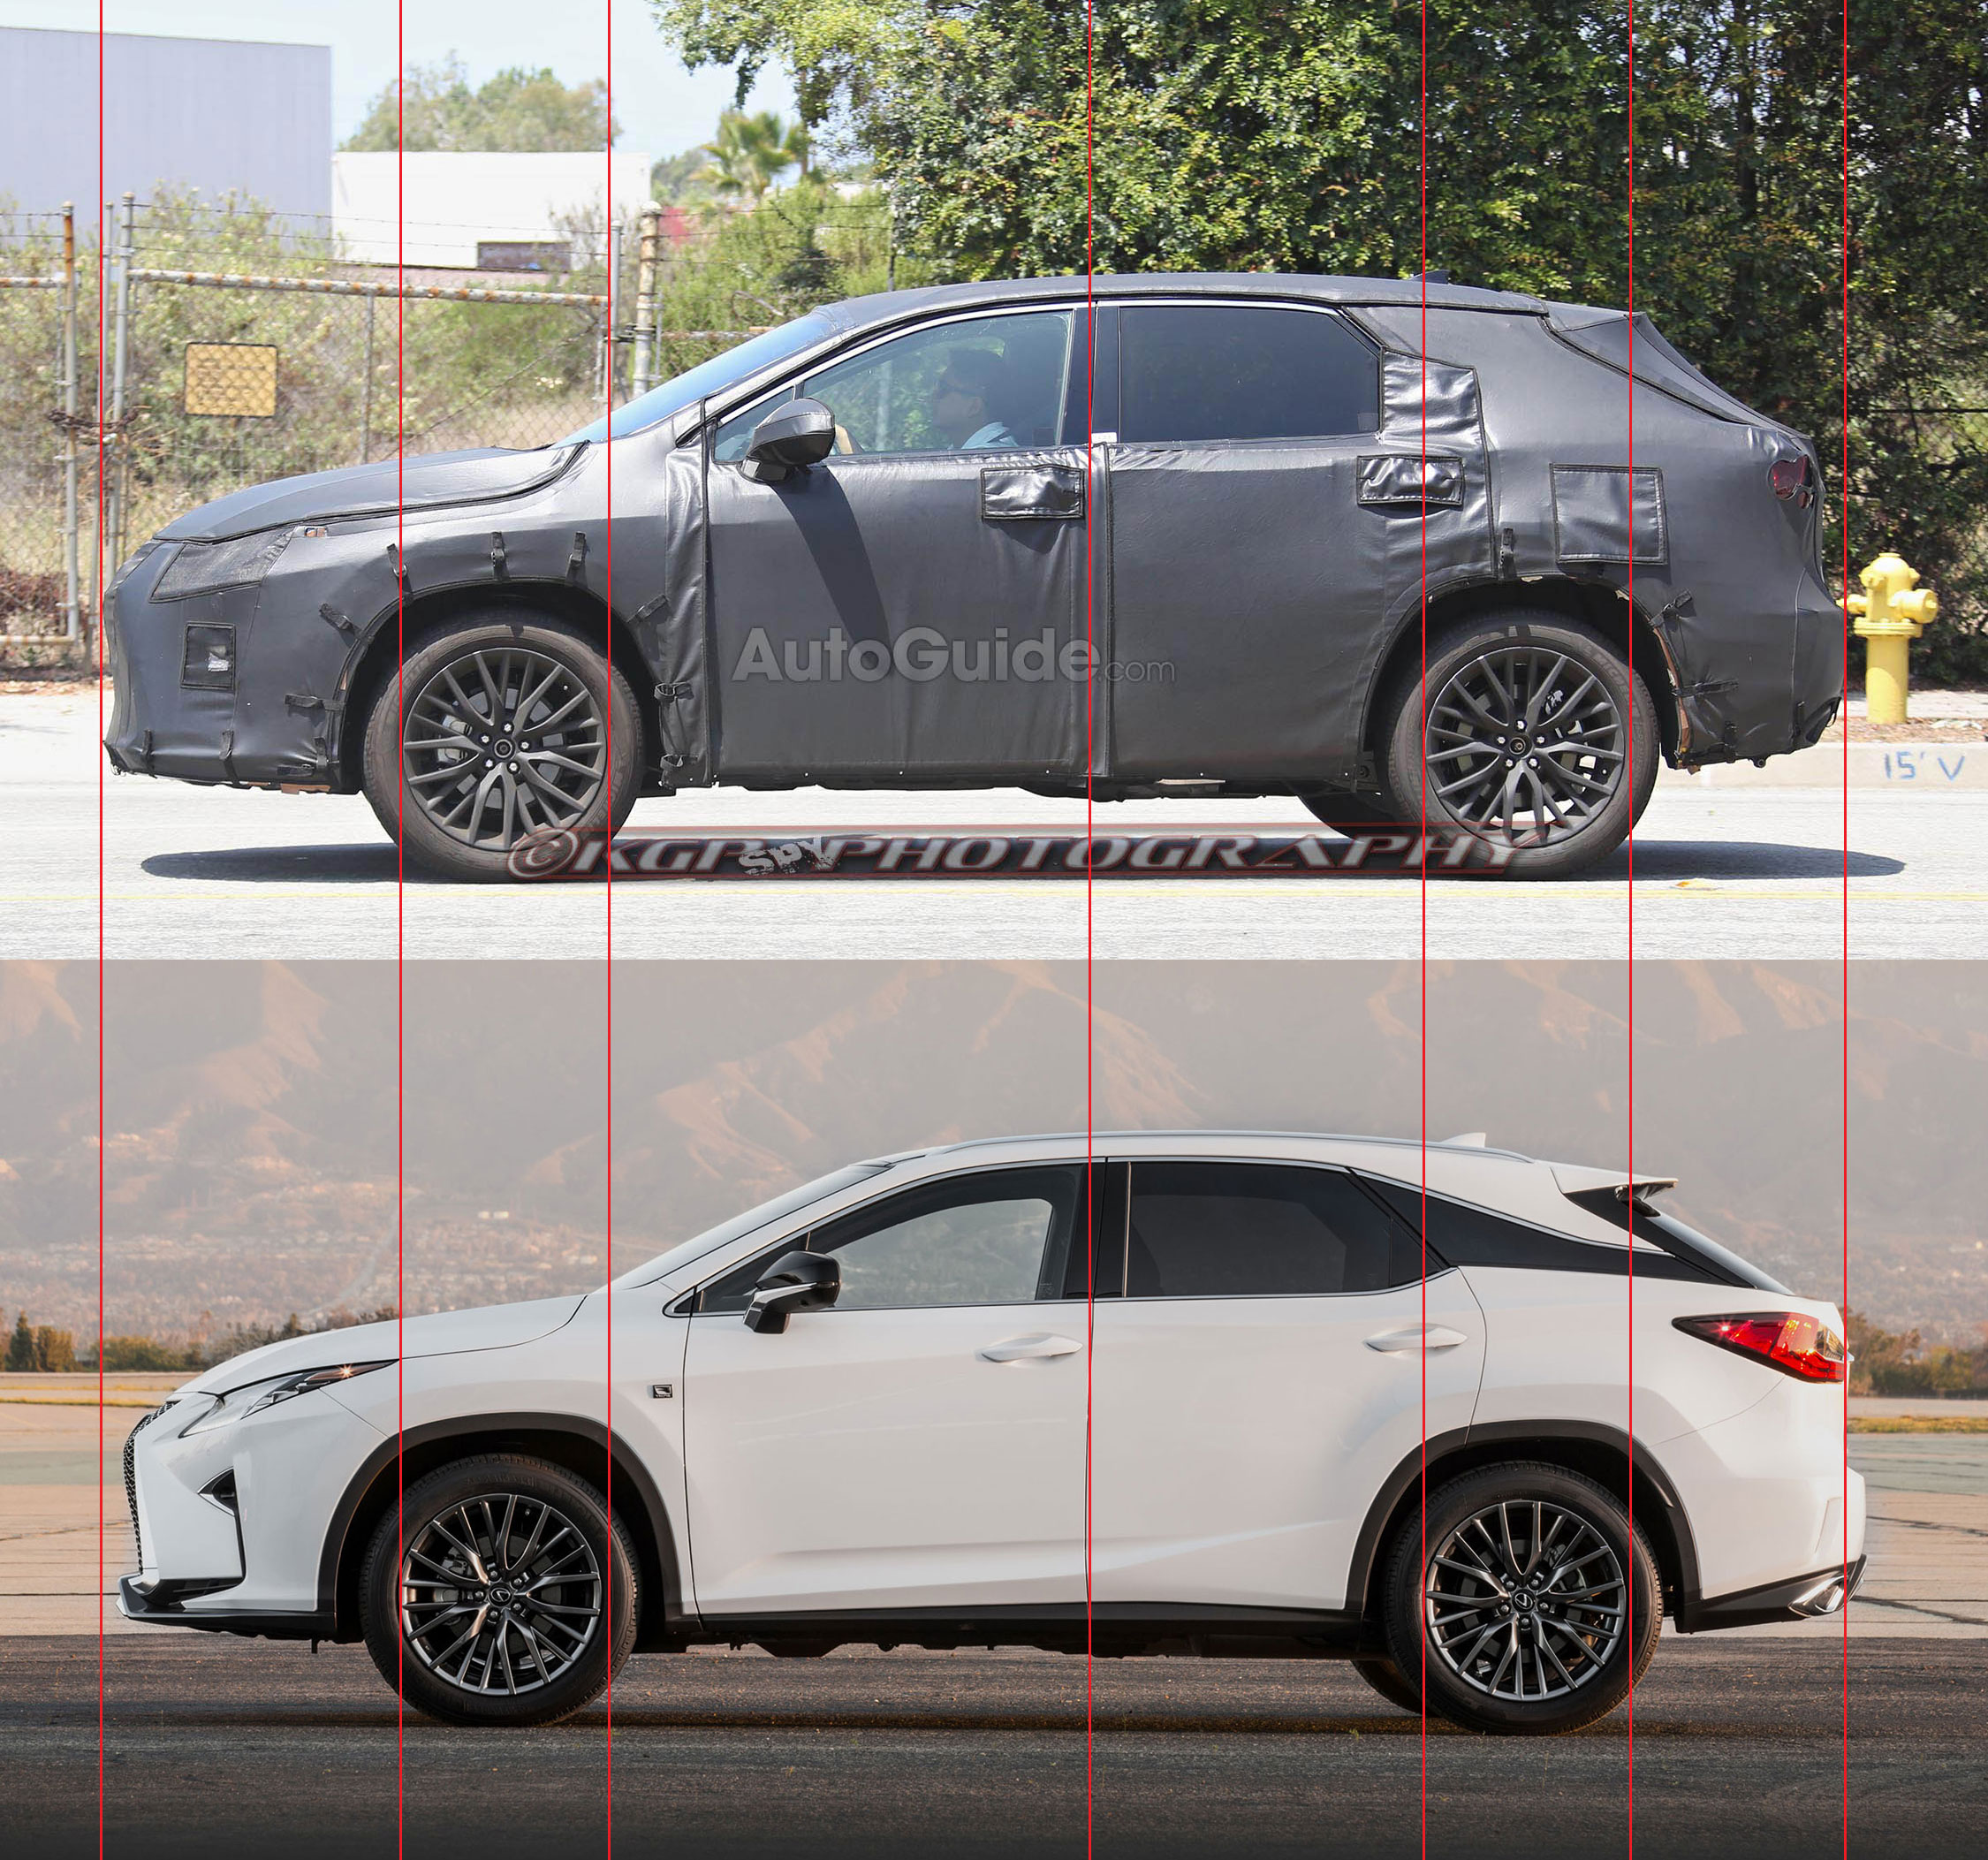 Lexus RX Prototype Comparison